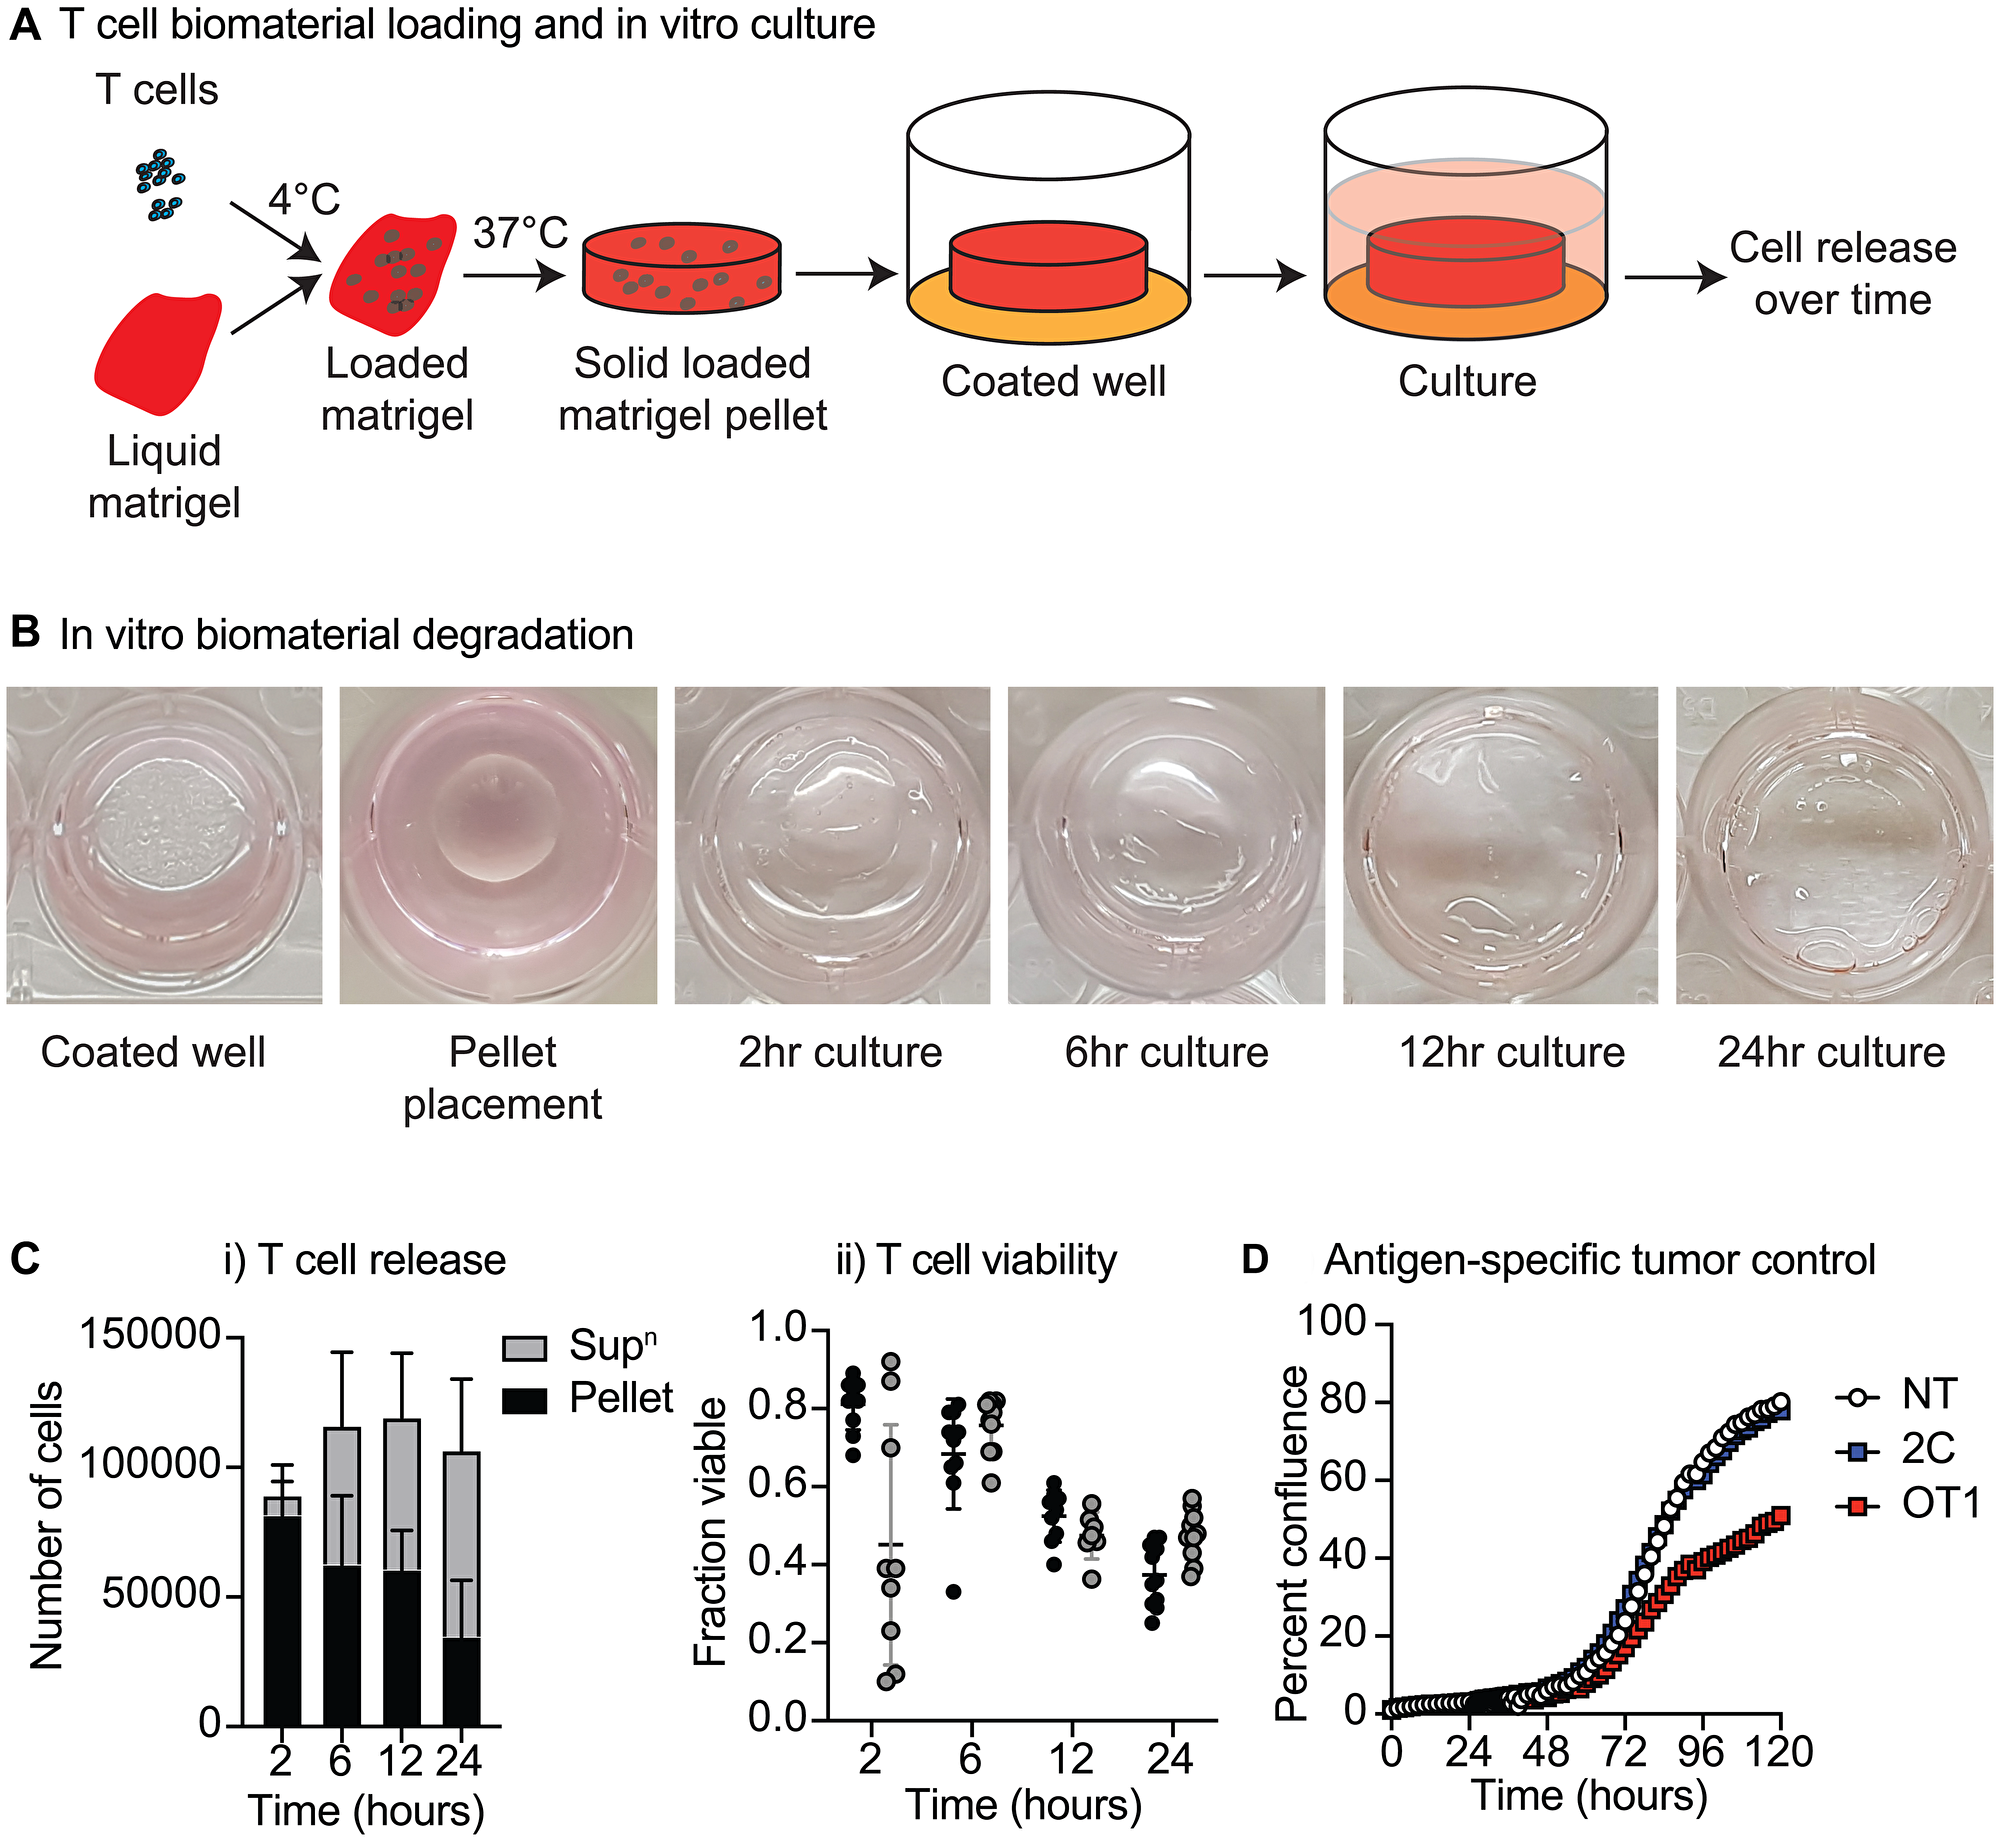 Biomaterial loading of T-cells.